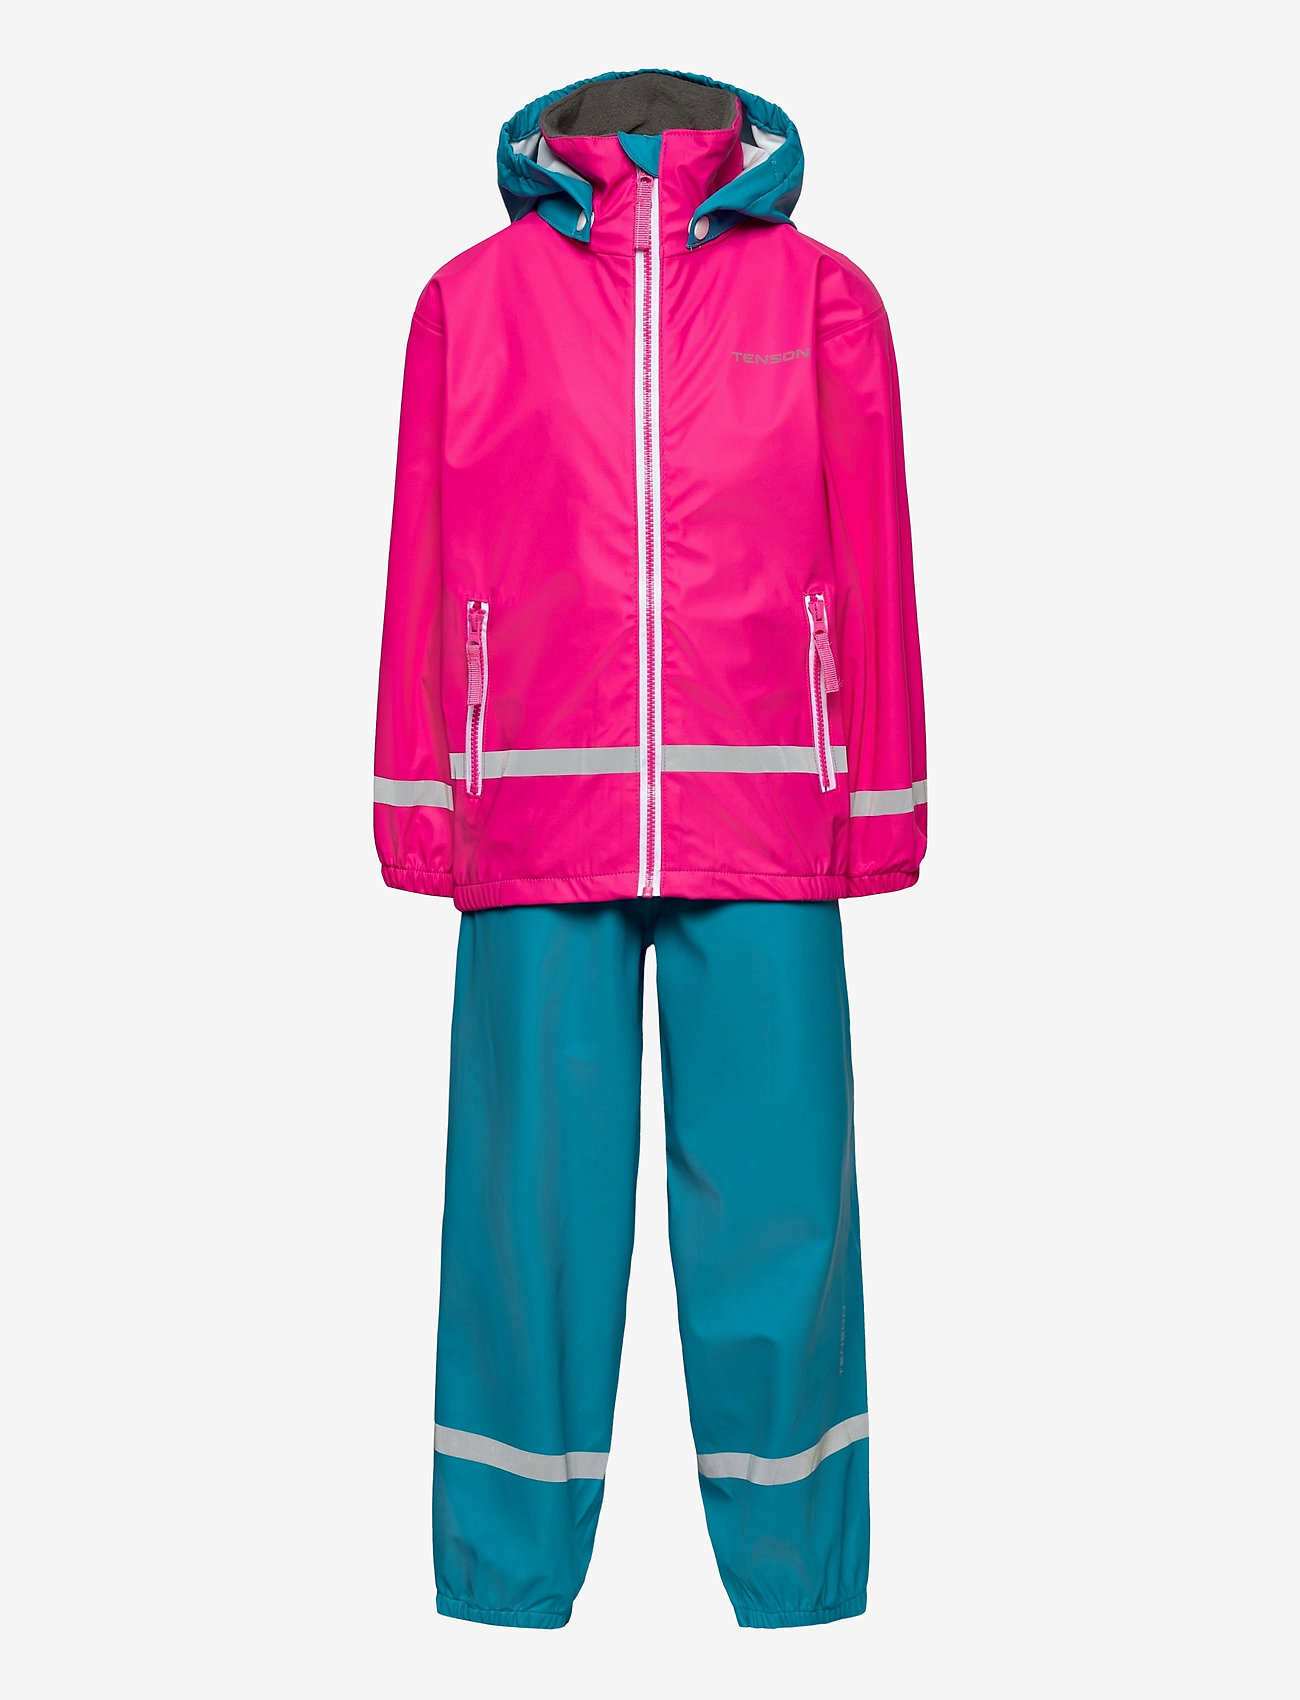 Tenson - Saturn Overall junior - sets & suits - pink - 0